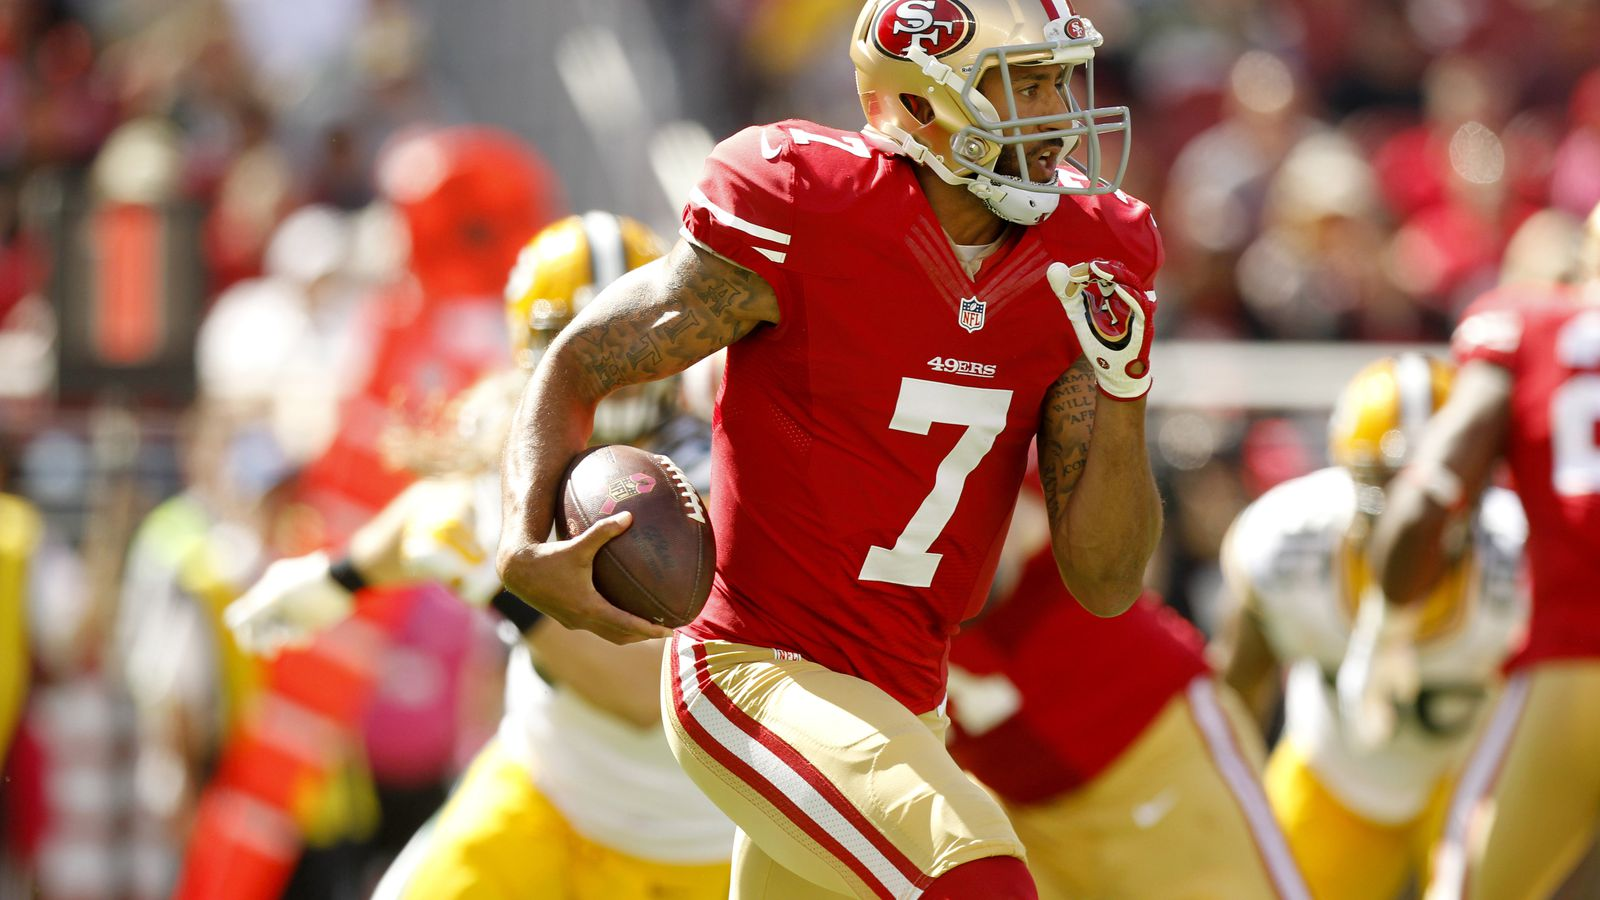 49ers vs packers 2015 tickets games sports